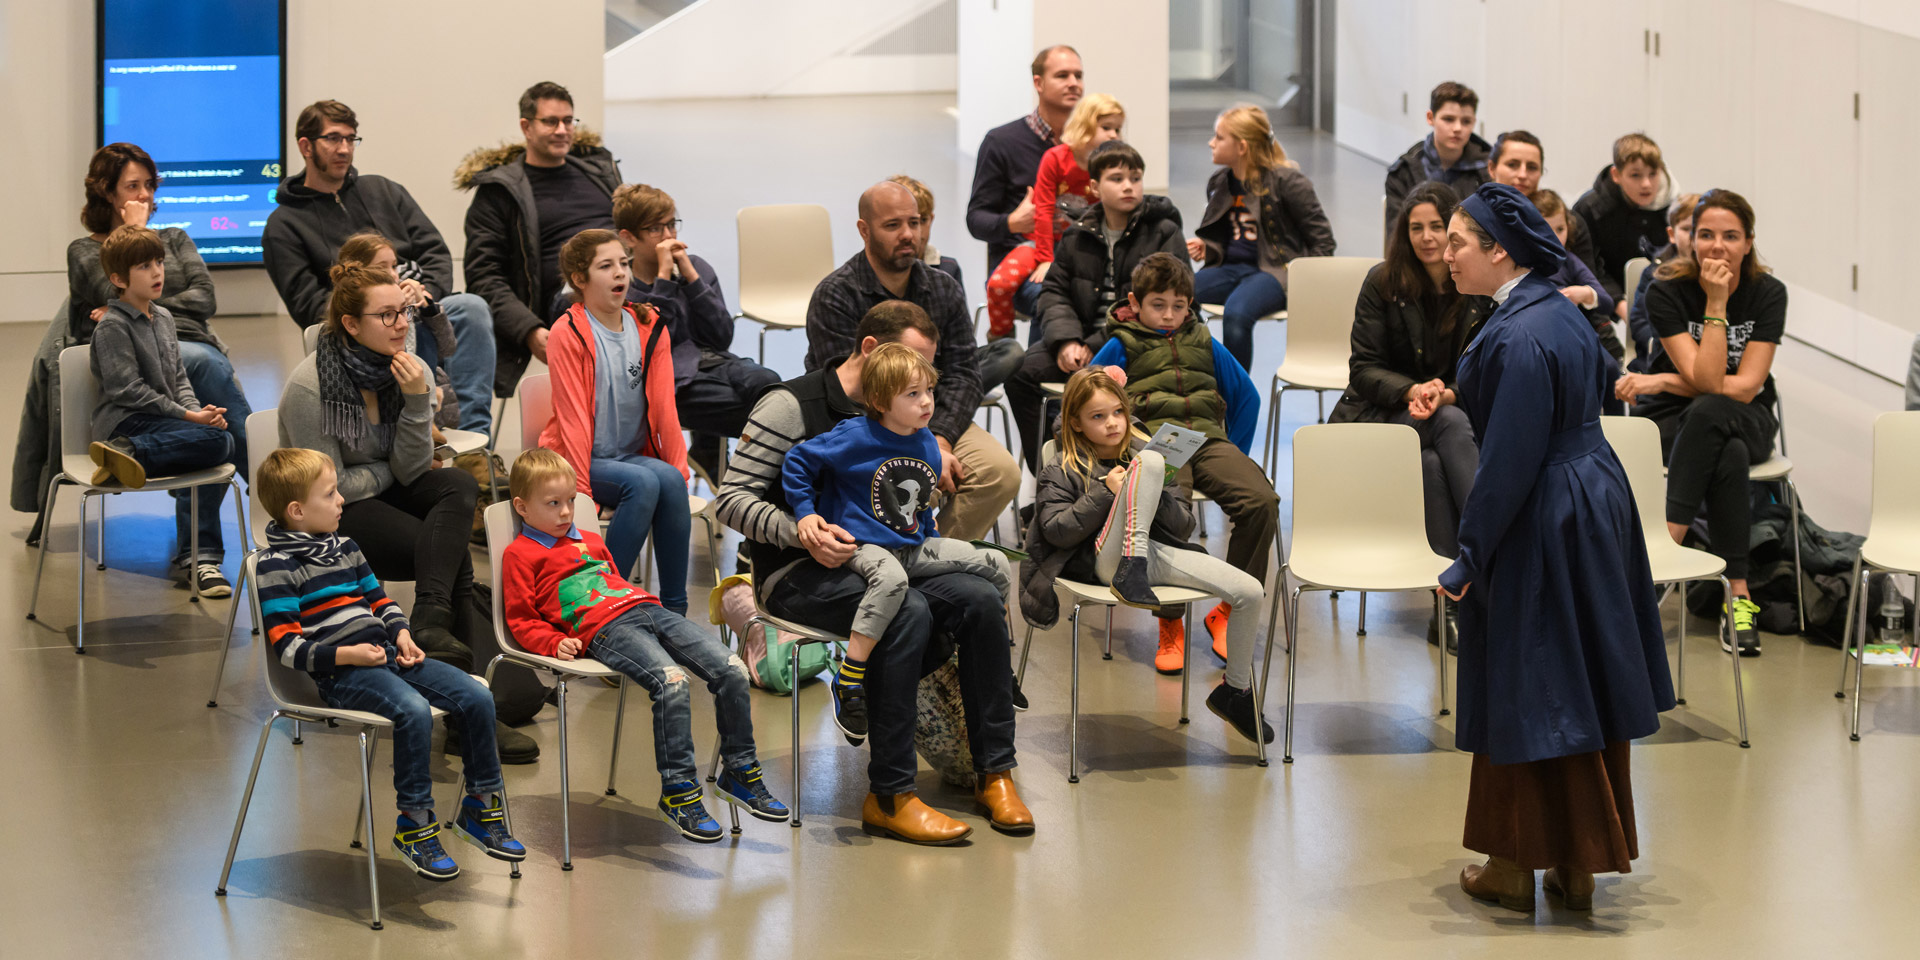 Storytelling session at the National Army Museum